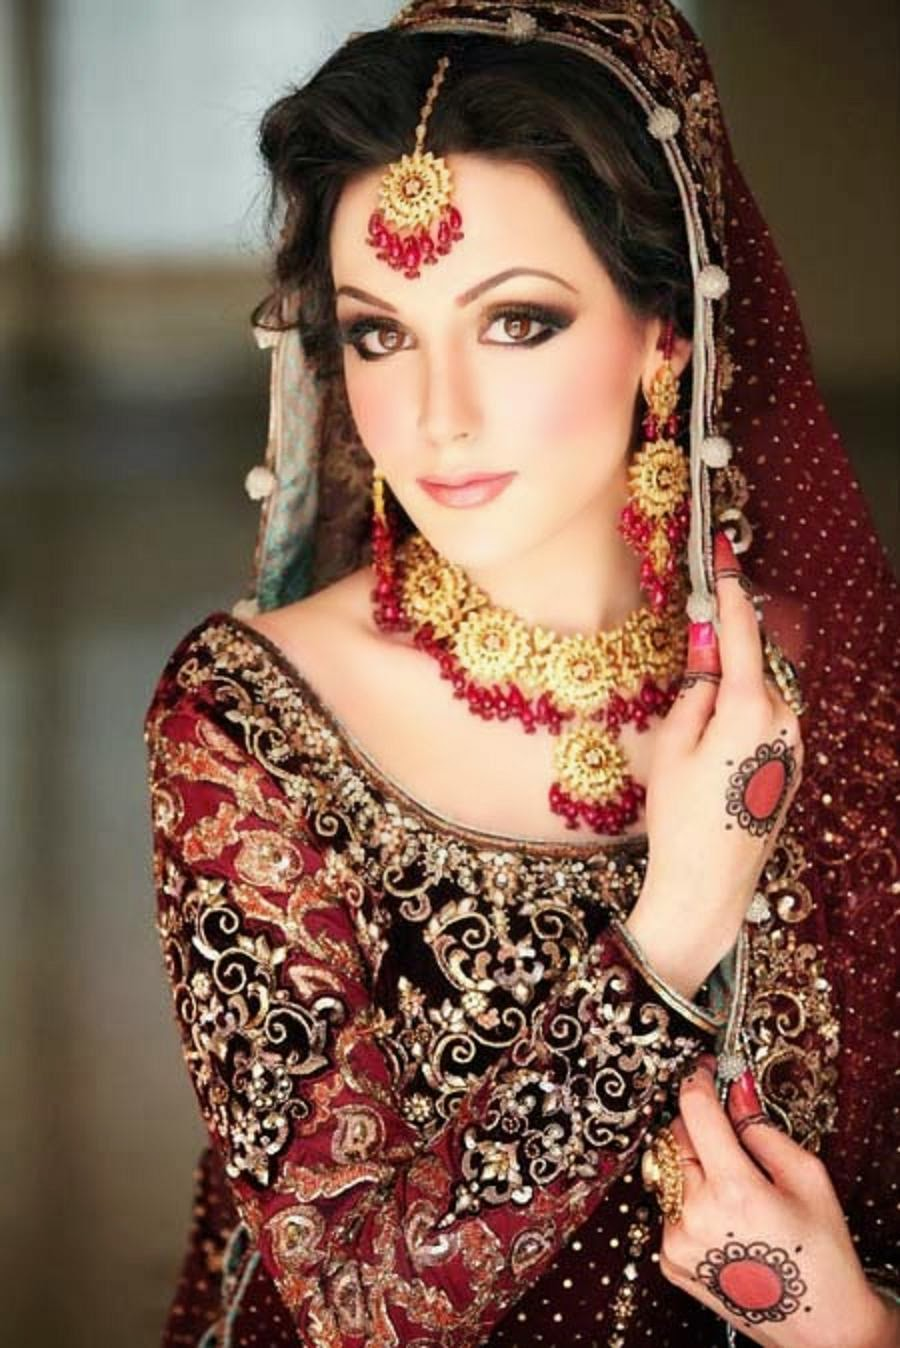 Indian Wedding Dulhan For Full Makeup - Mugeek Vidalondon